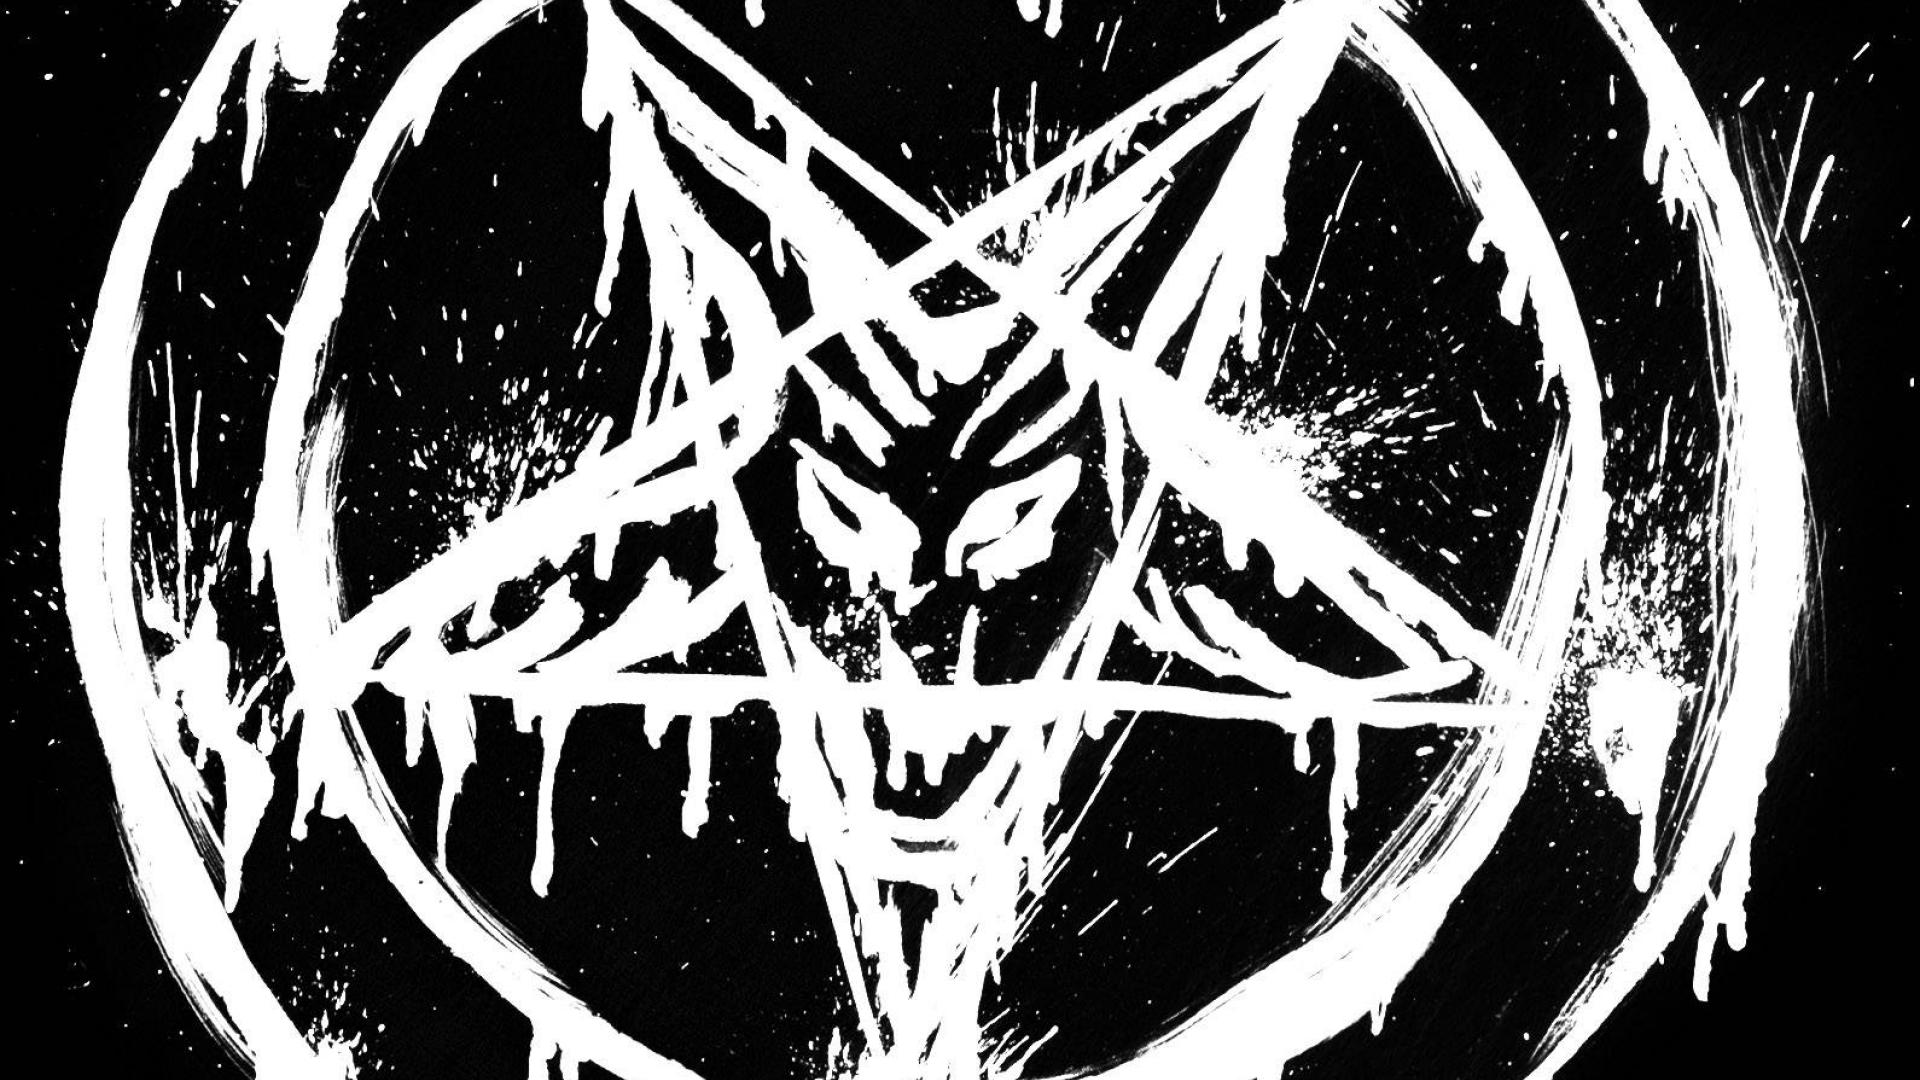 Pentagram Wallpaper - Android Apps on Google Play